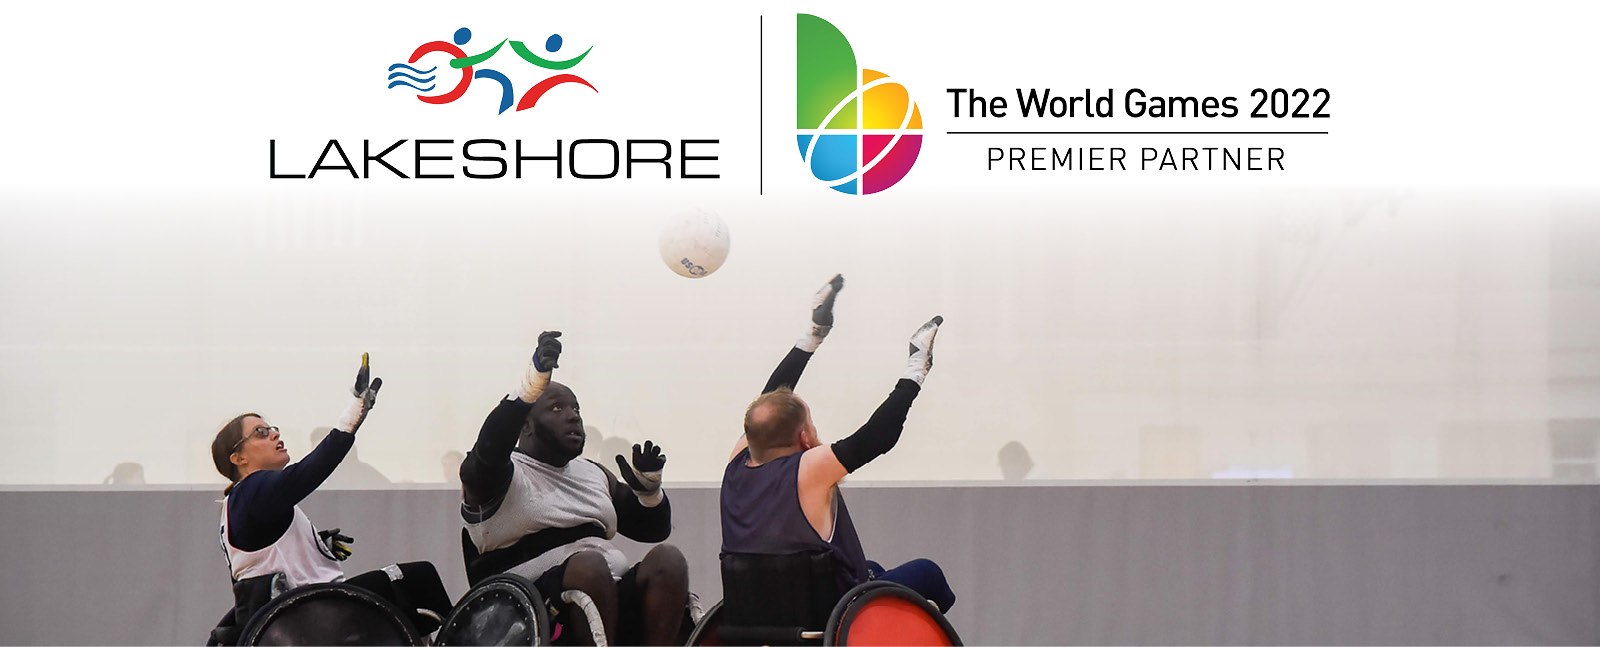 Three wheelchair rugby players reach up to catch a ball underneath the Lakeshore and World Games logo